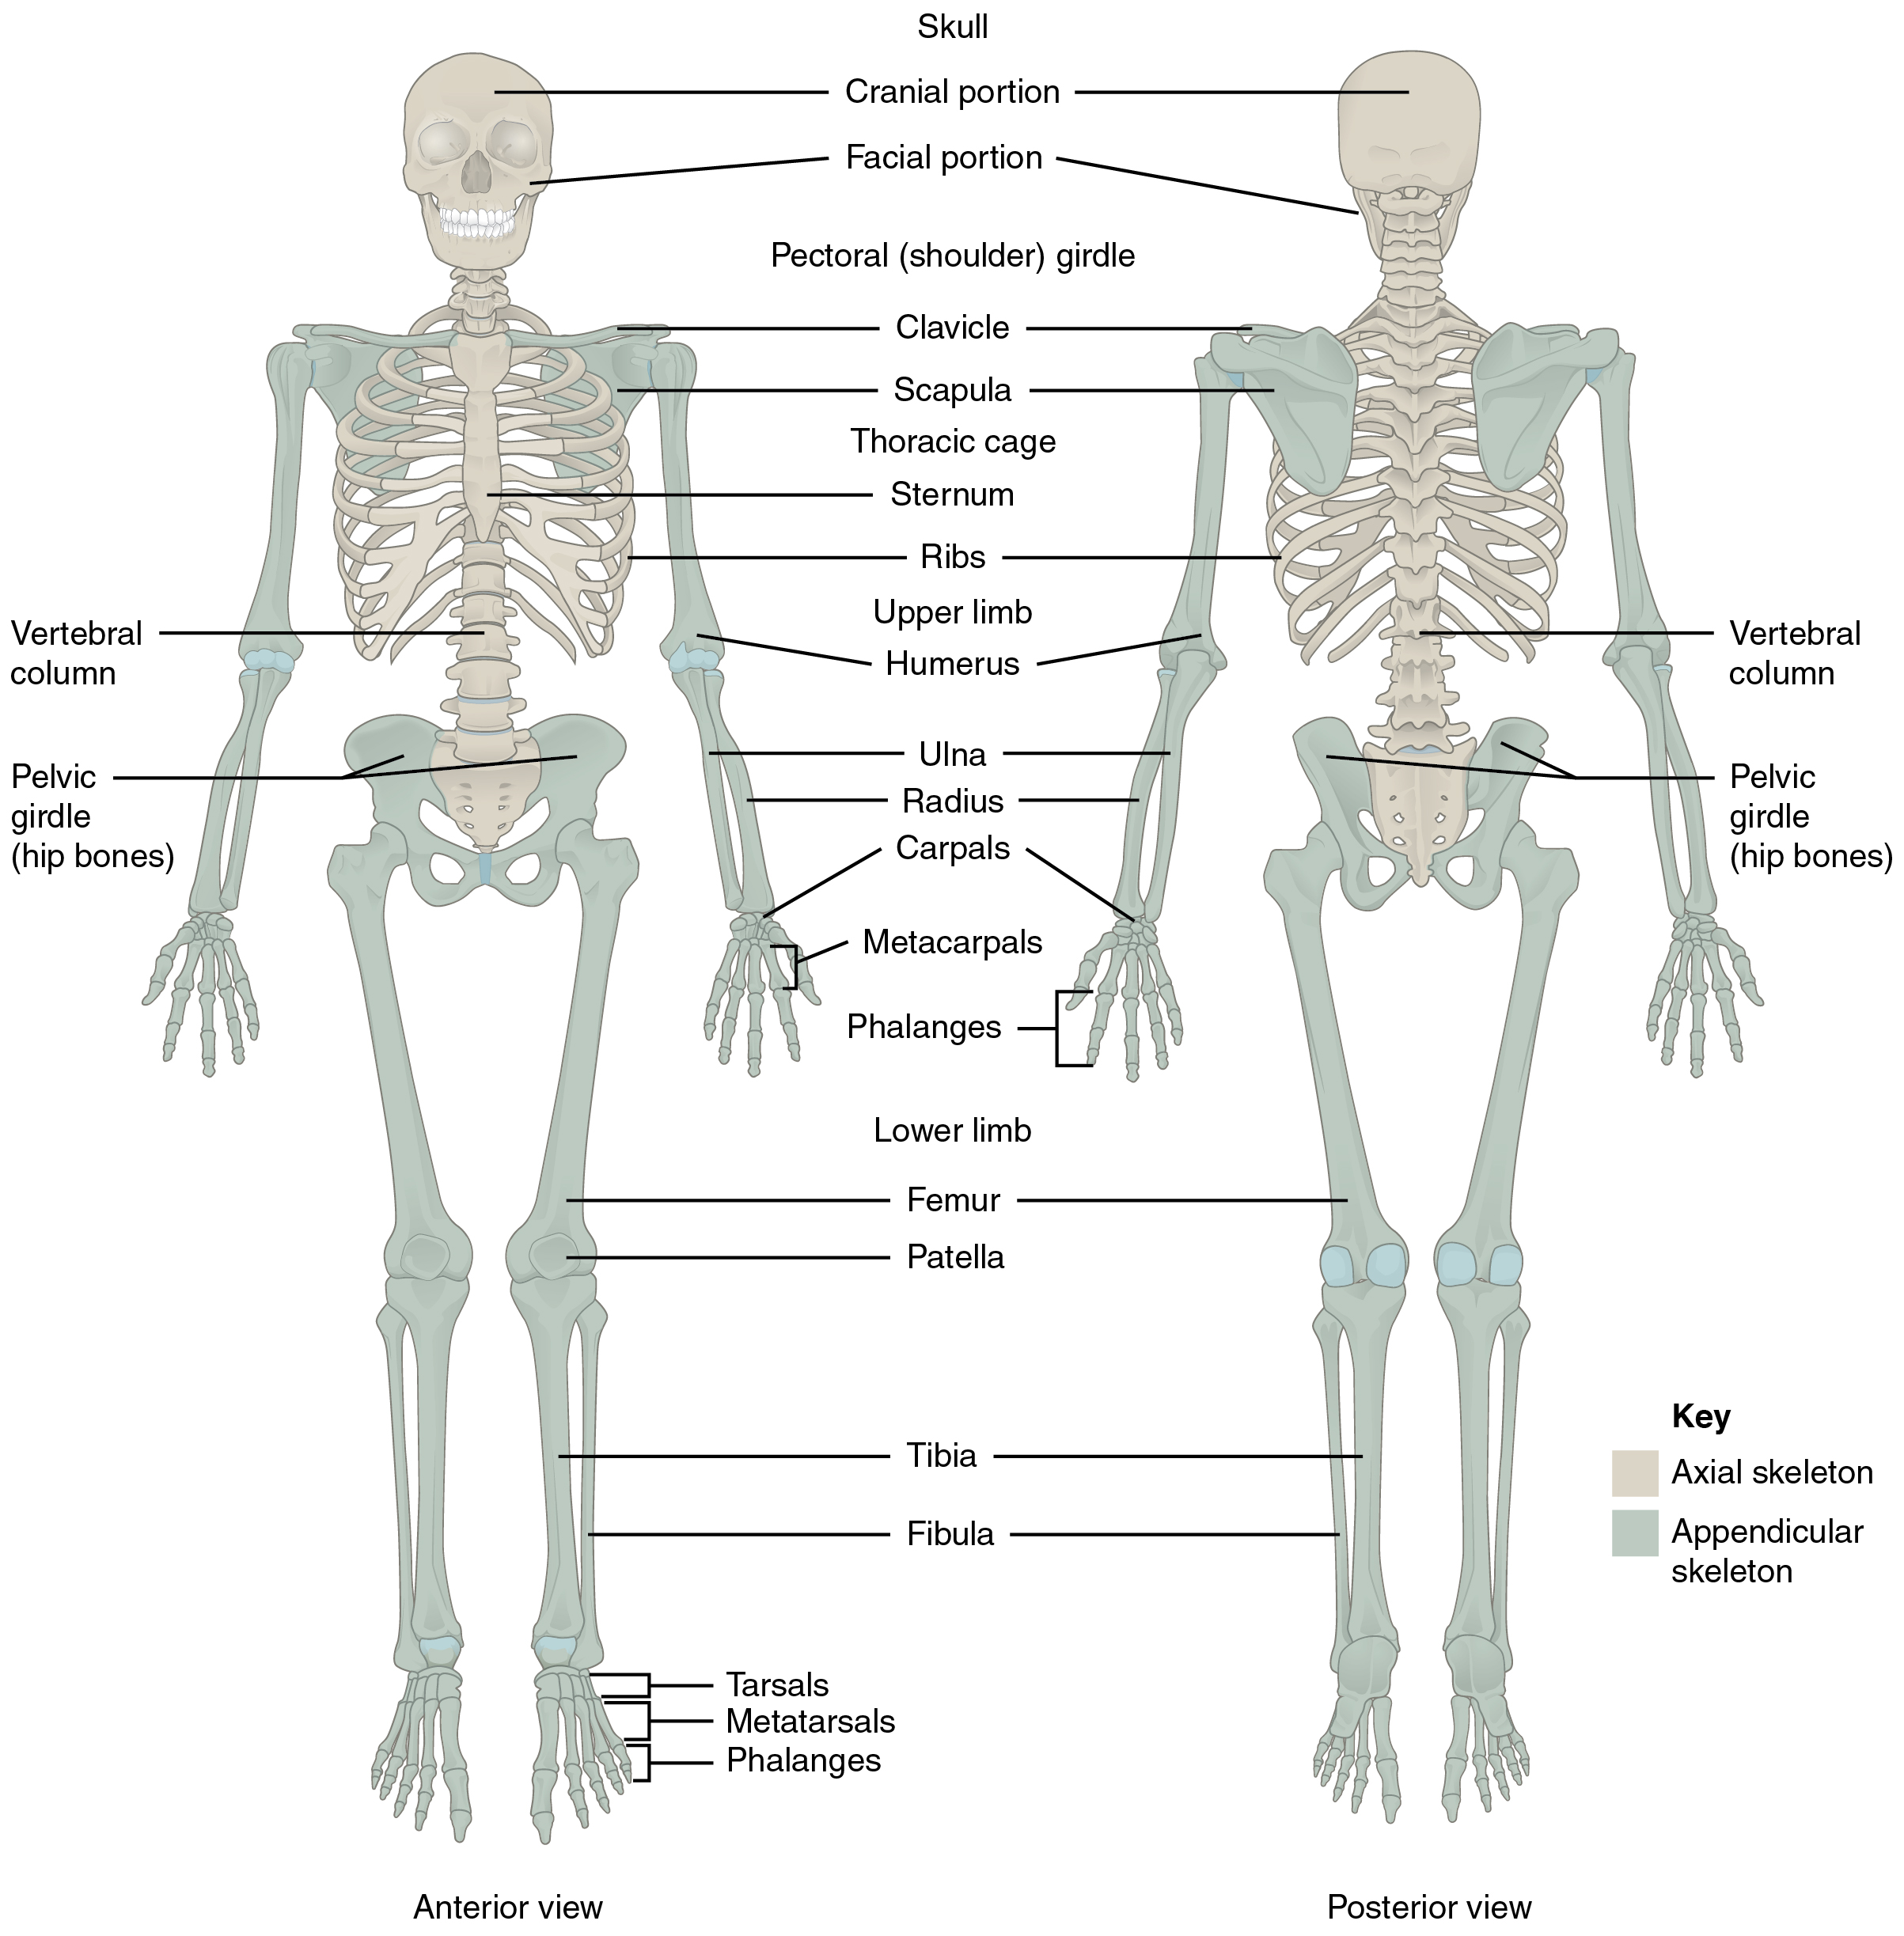 7.1 Divisions of the Skeletal System – Anatomy and Physiology